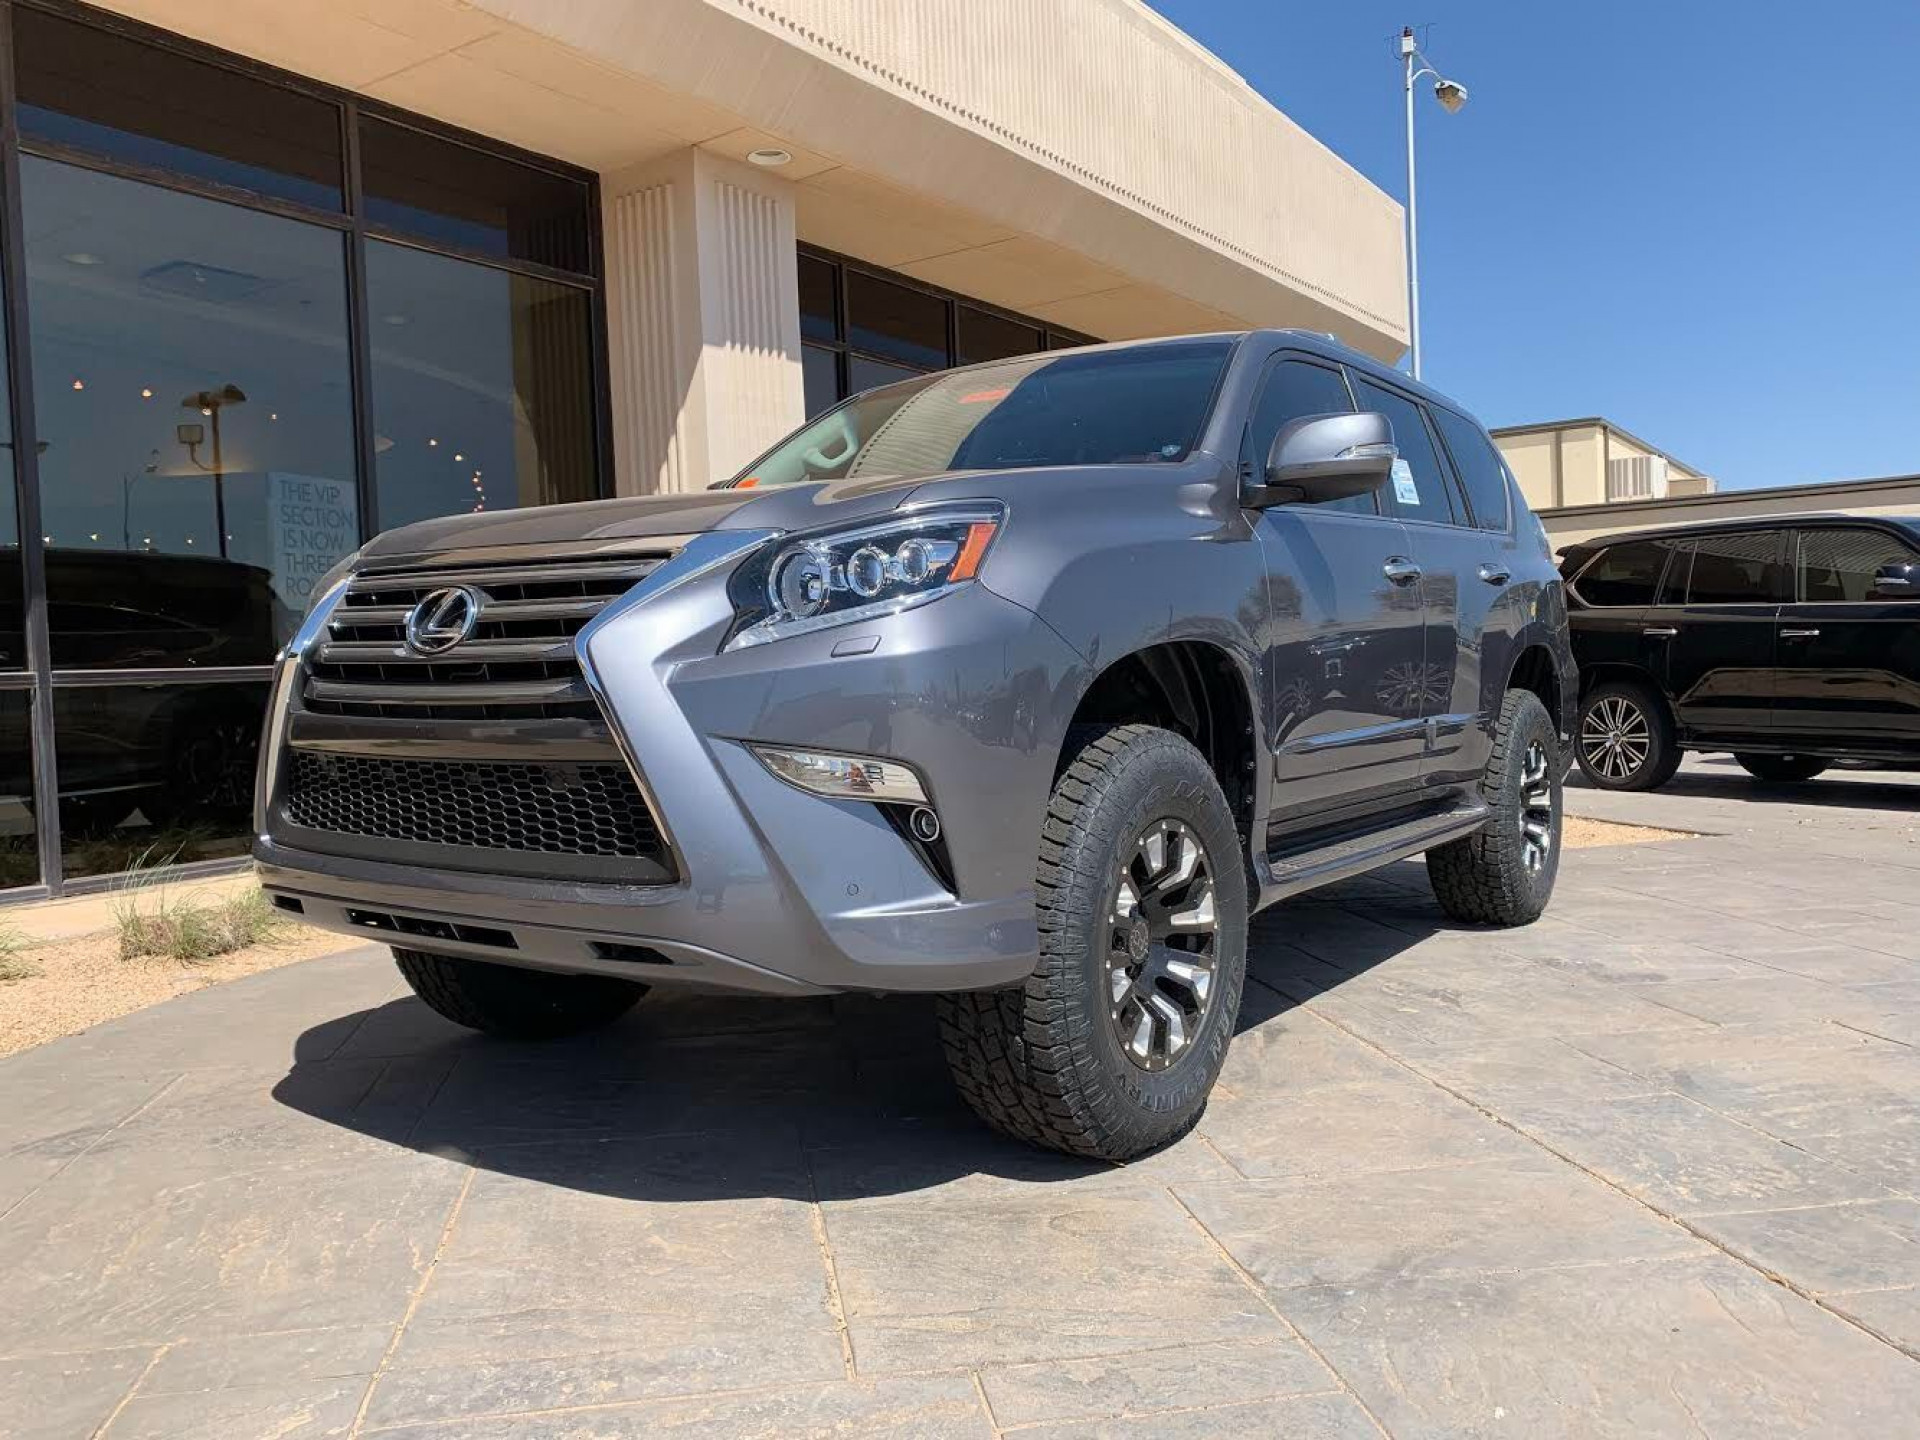 Lexus GX with Black Rhino wheels and Toyo AT tires